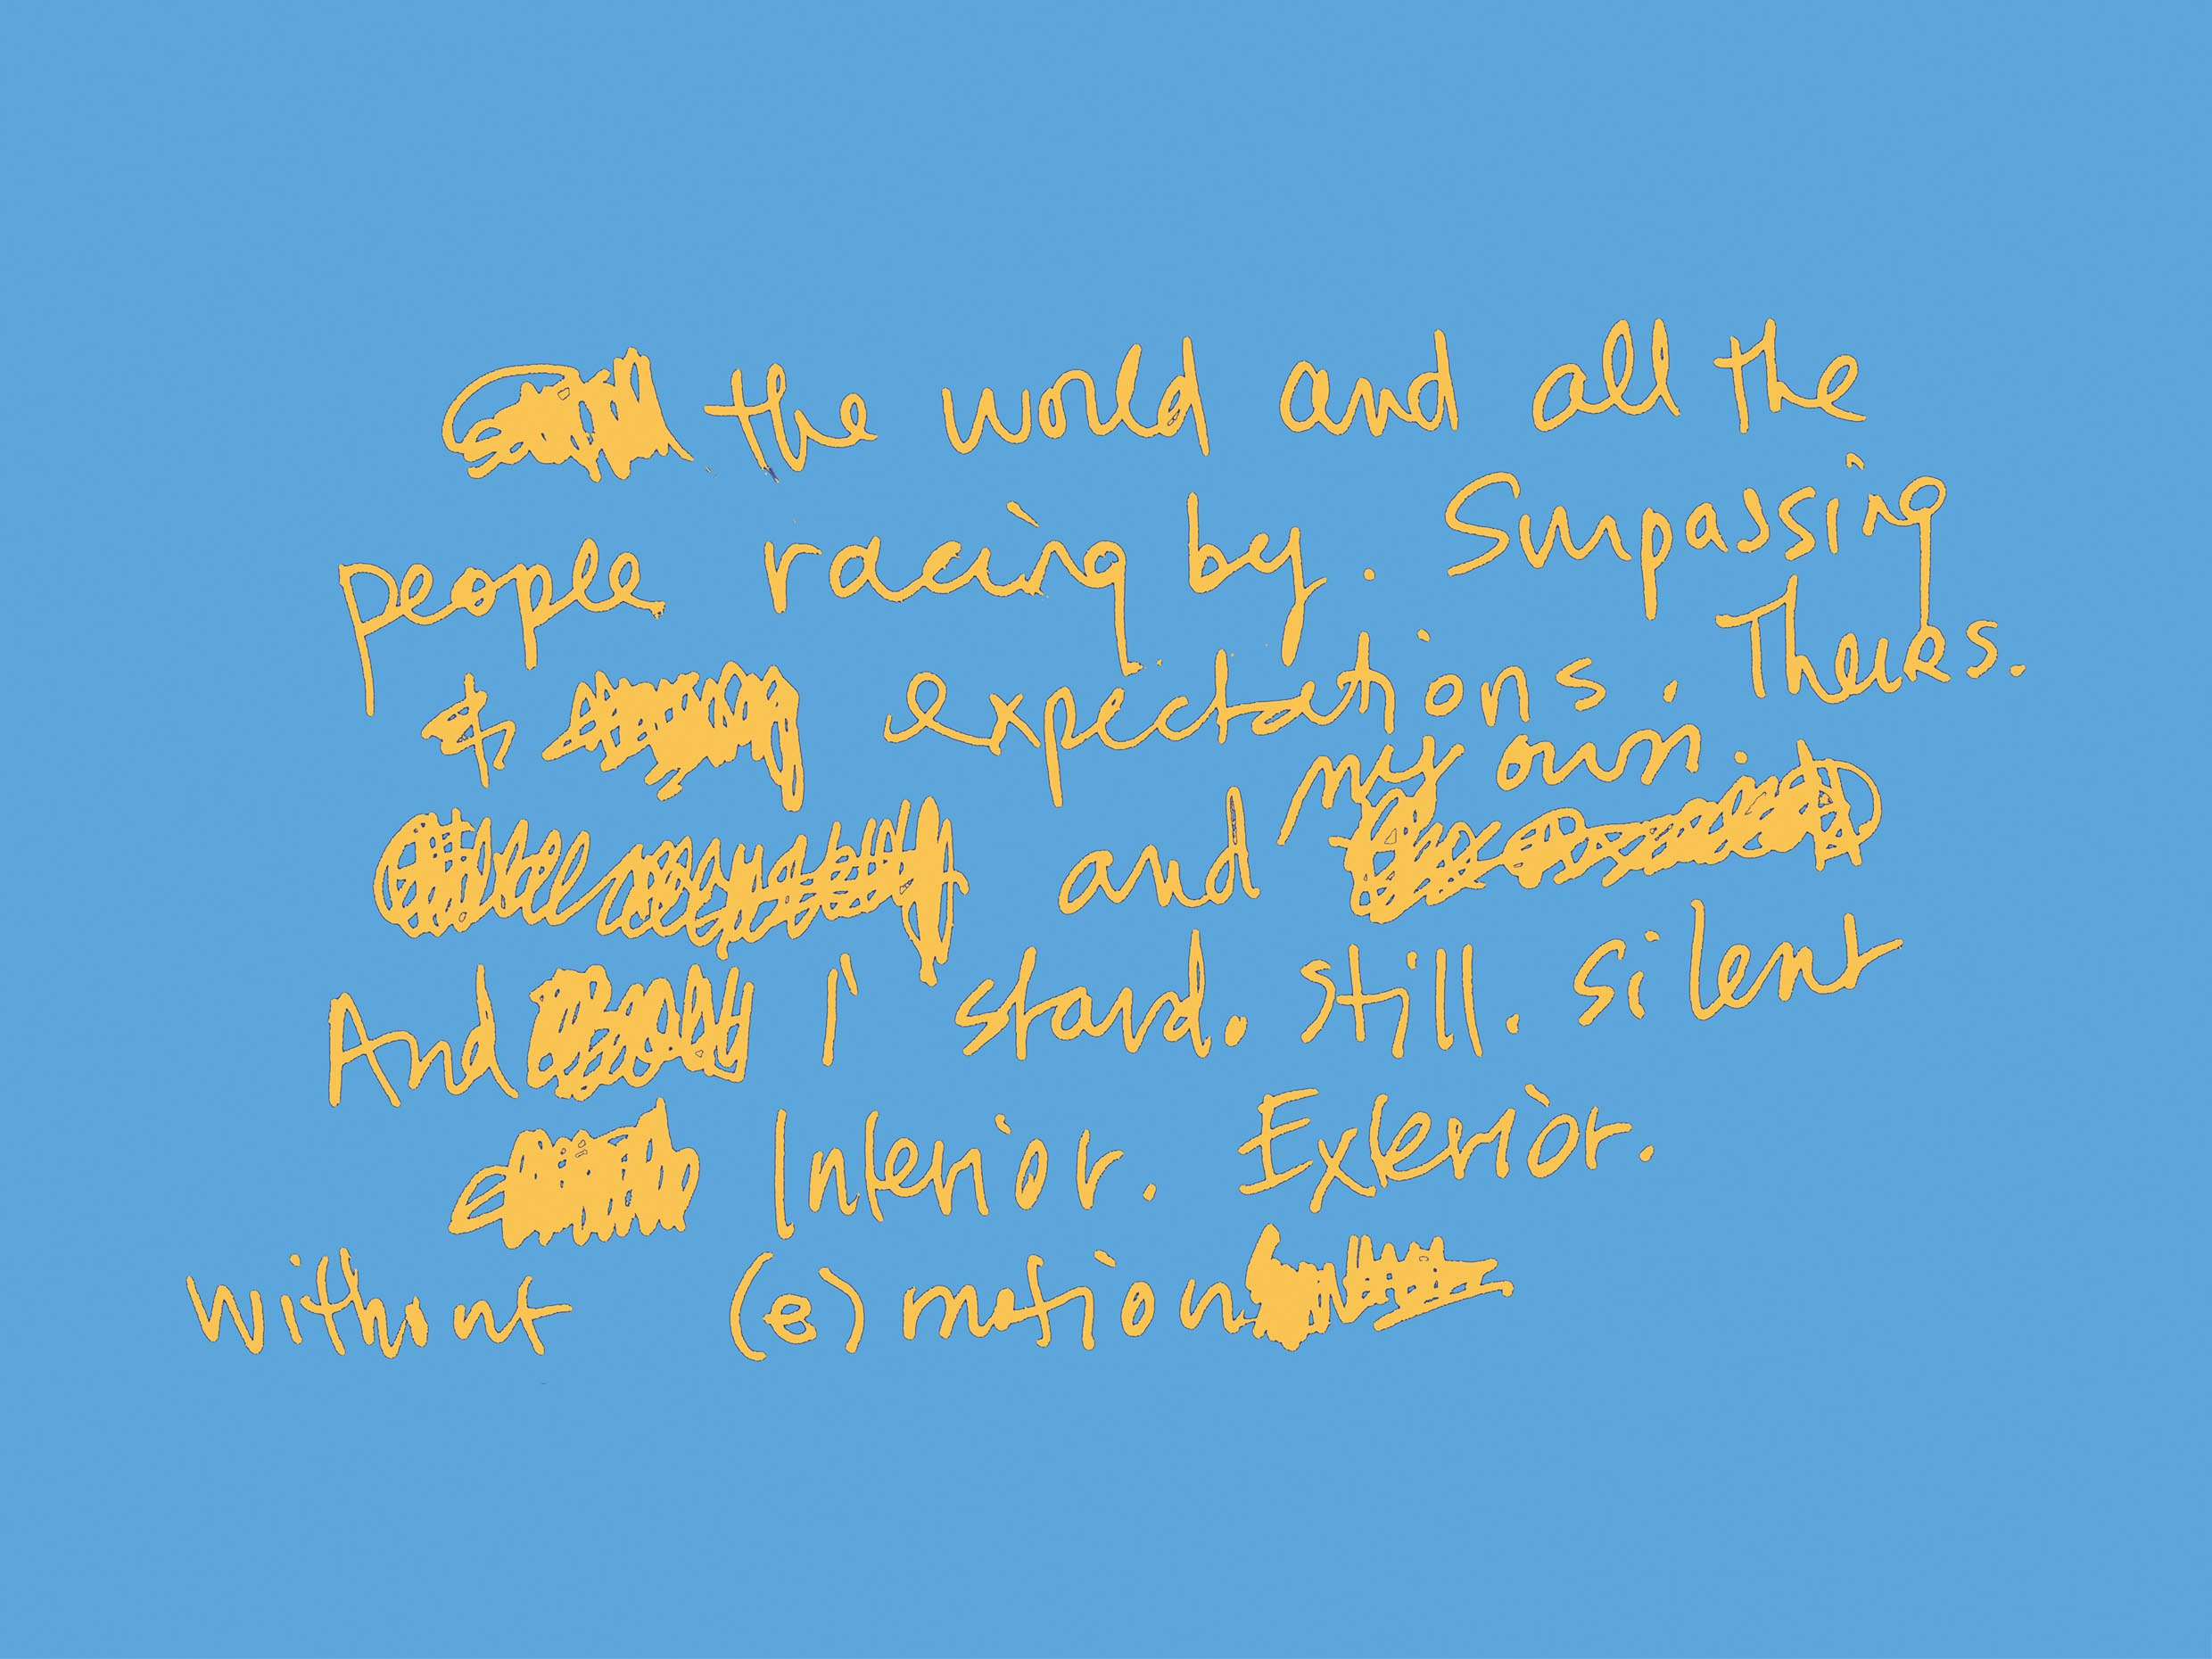 art every day number 160 the world and all the people words handwritten